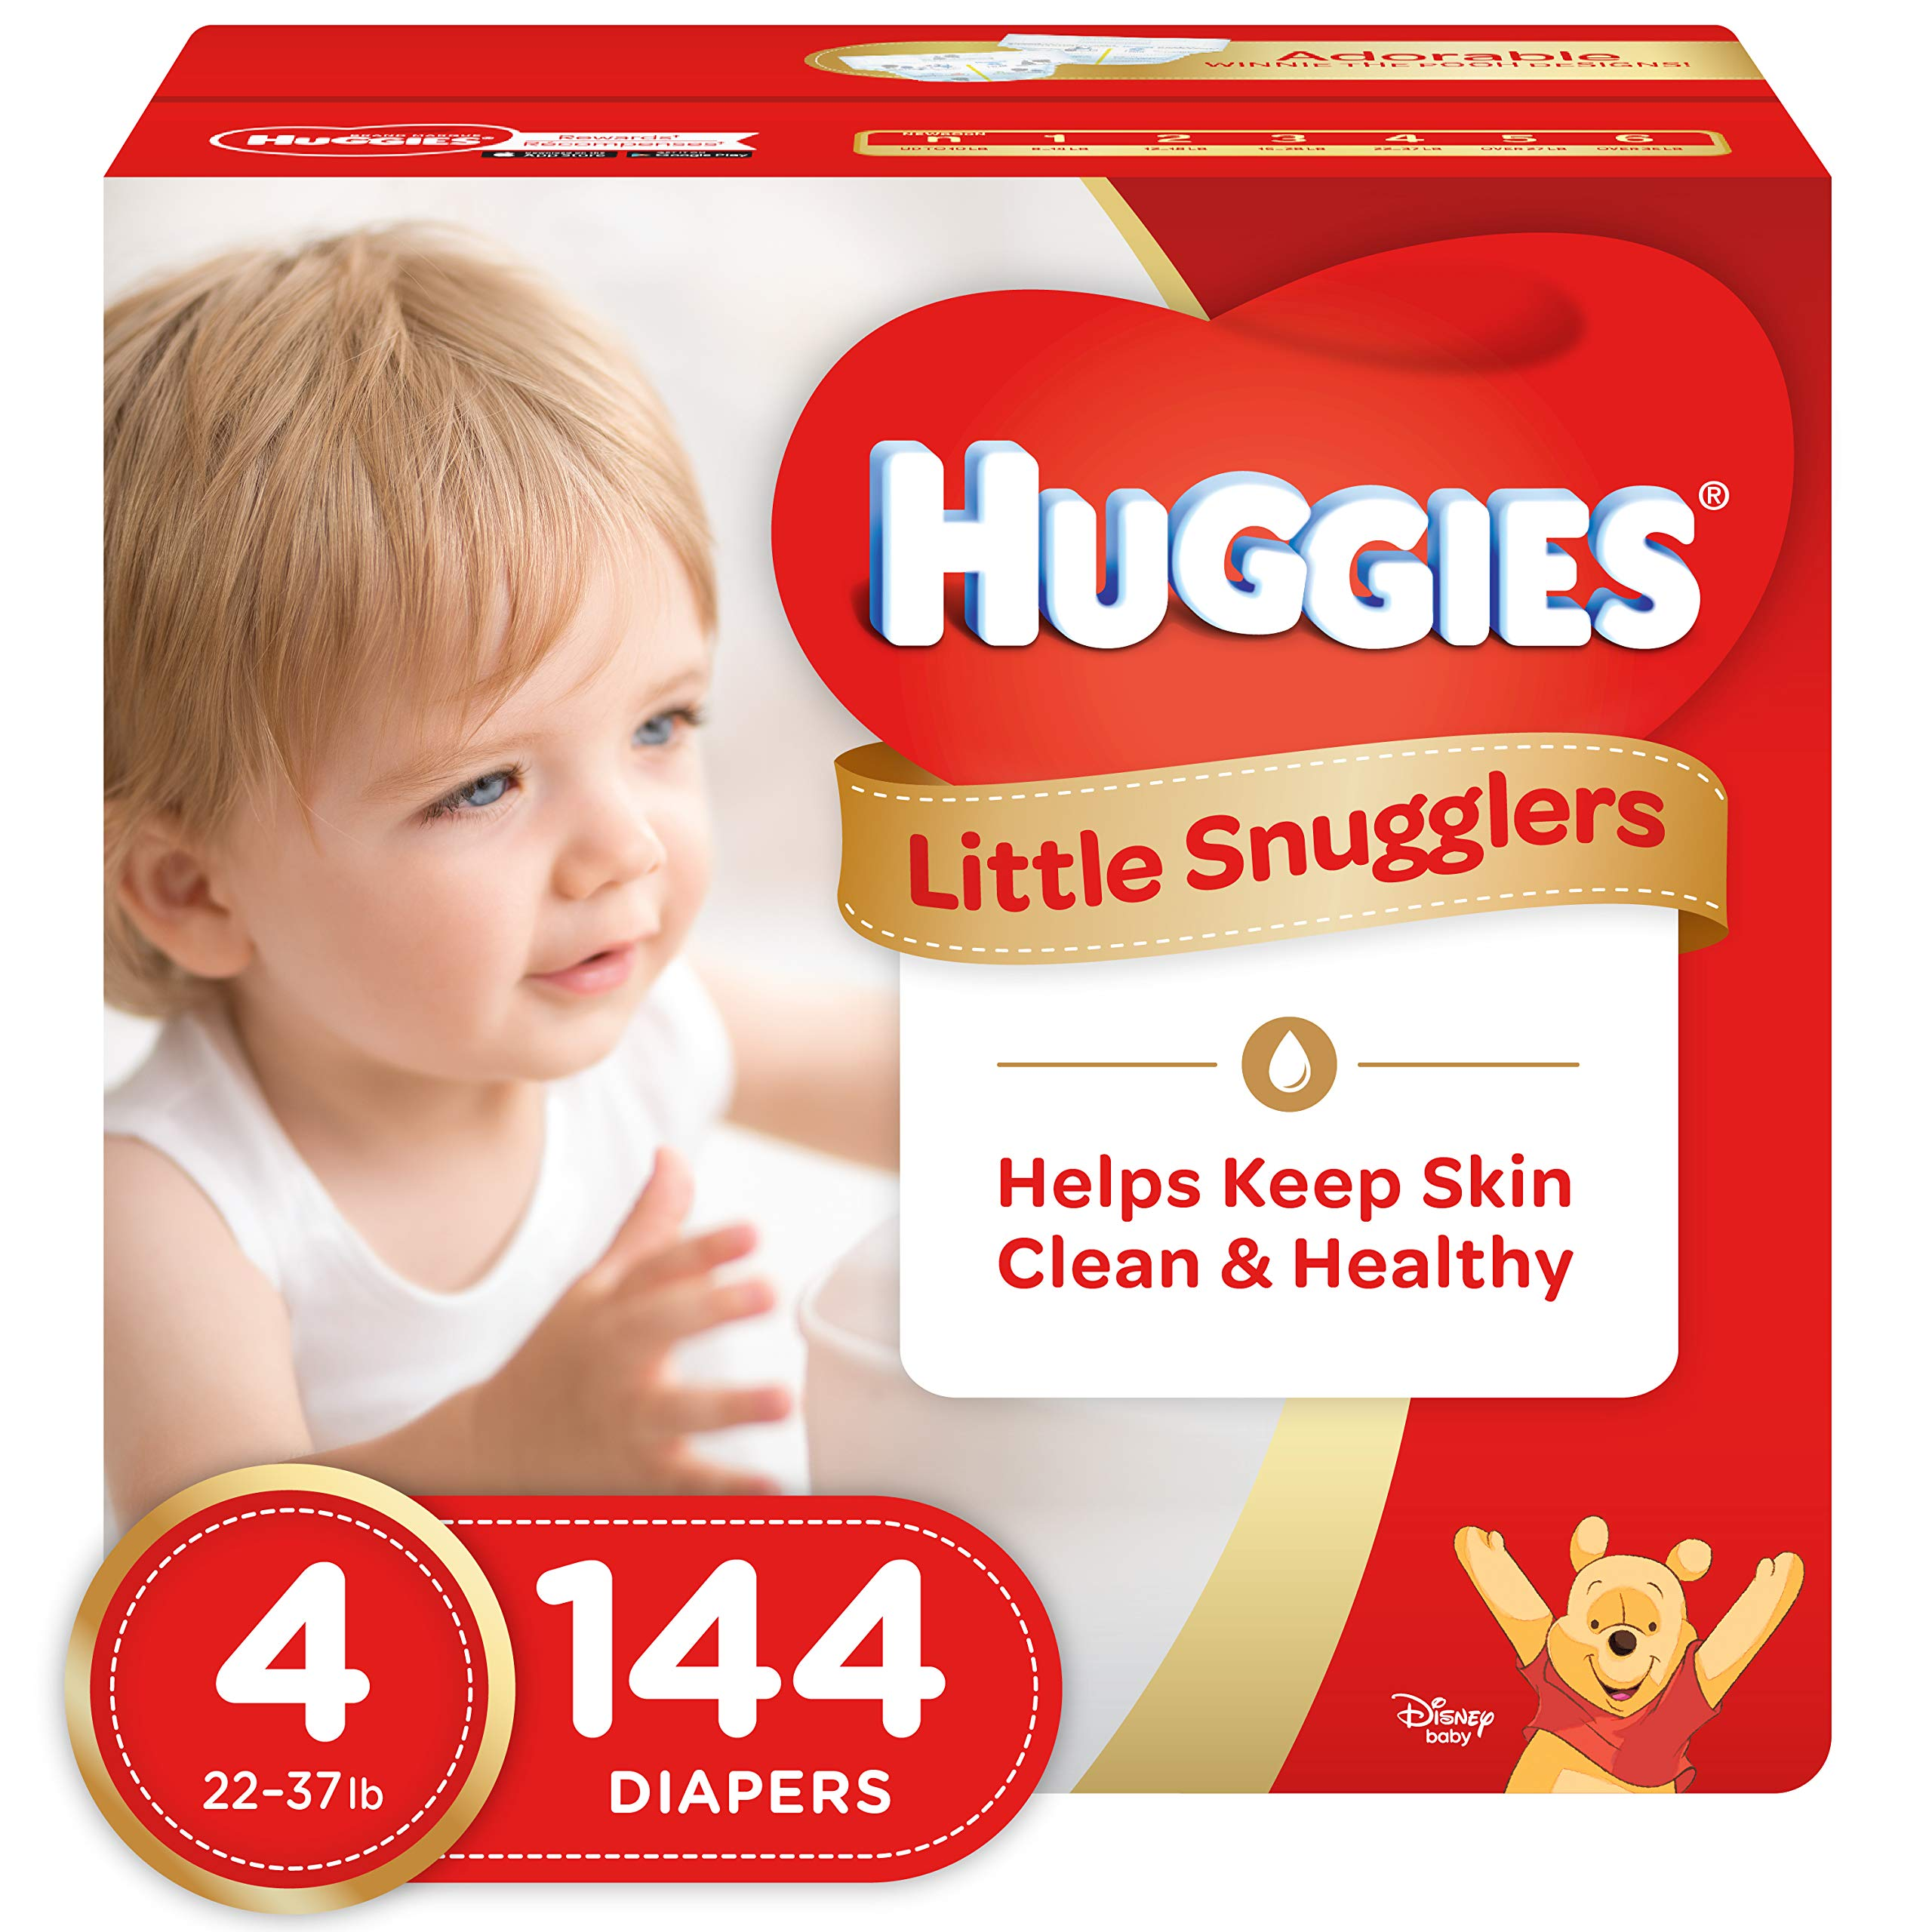 Huggies Little Snugglers Baby Diapers, Size 4, 144 Count, ECONOMY PLUS (Packaging May Vary)